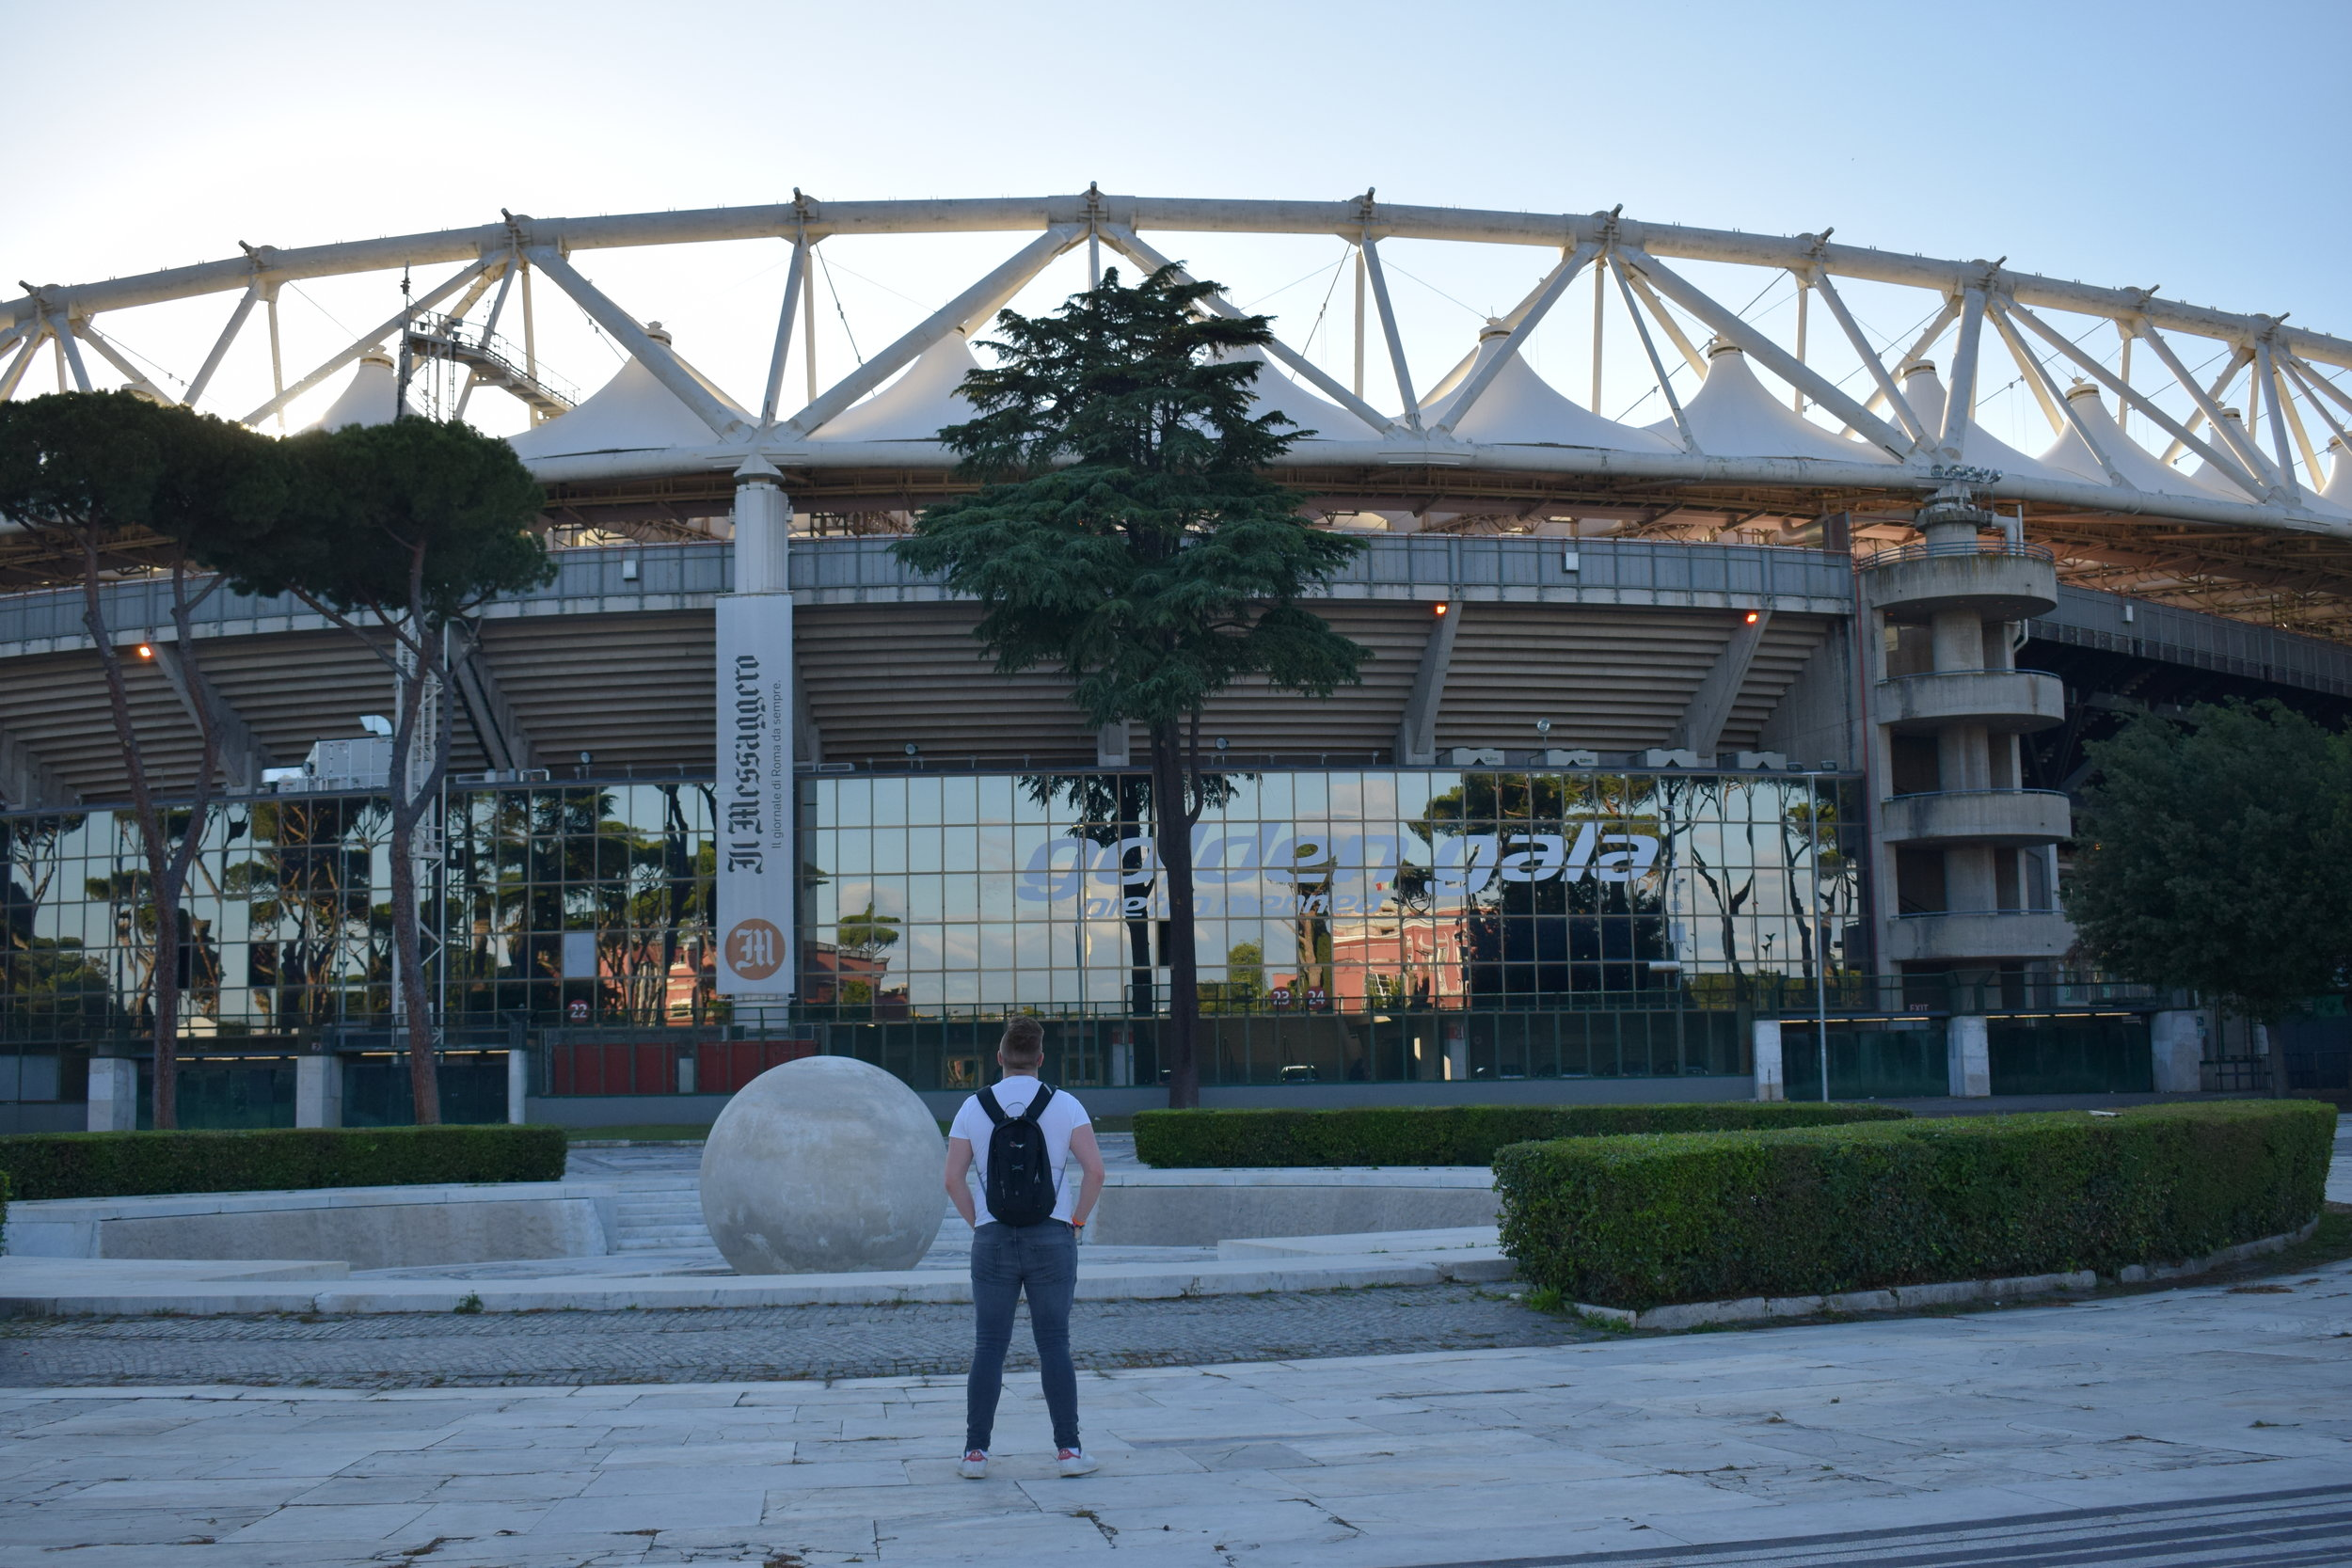 Next time I'm at the Stadio Olimpico, I'll be watching AS Roma in action!